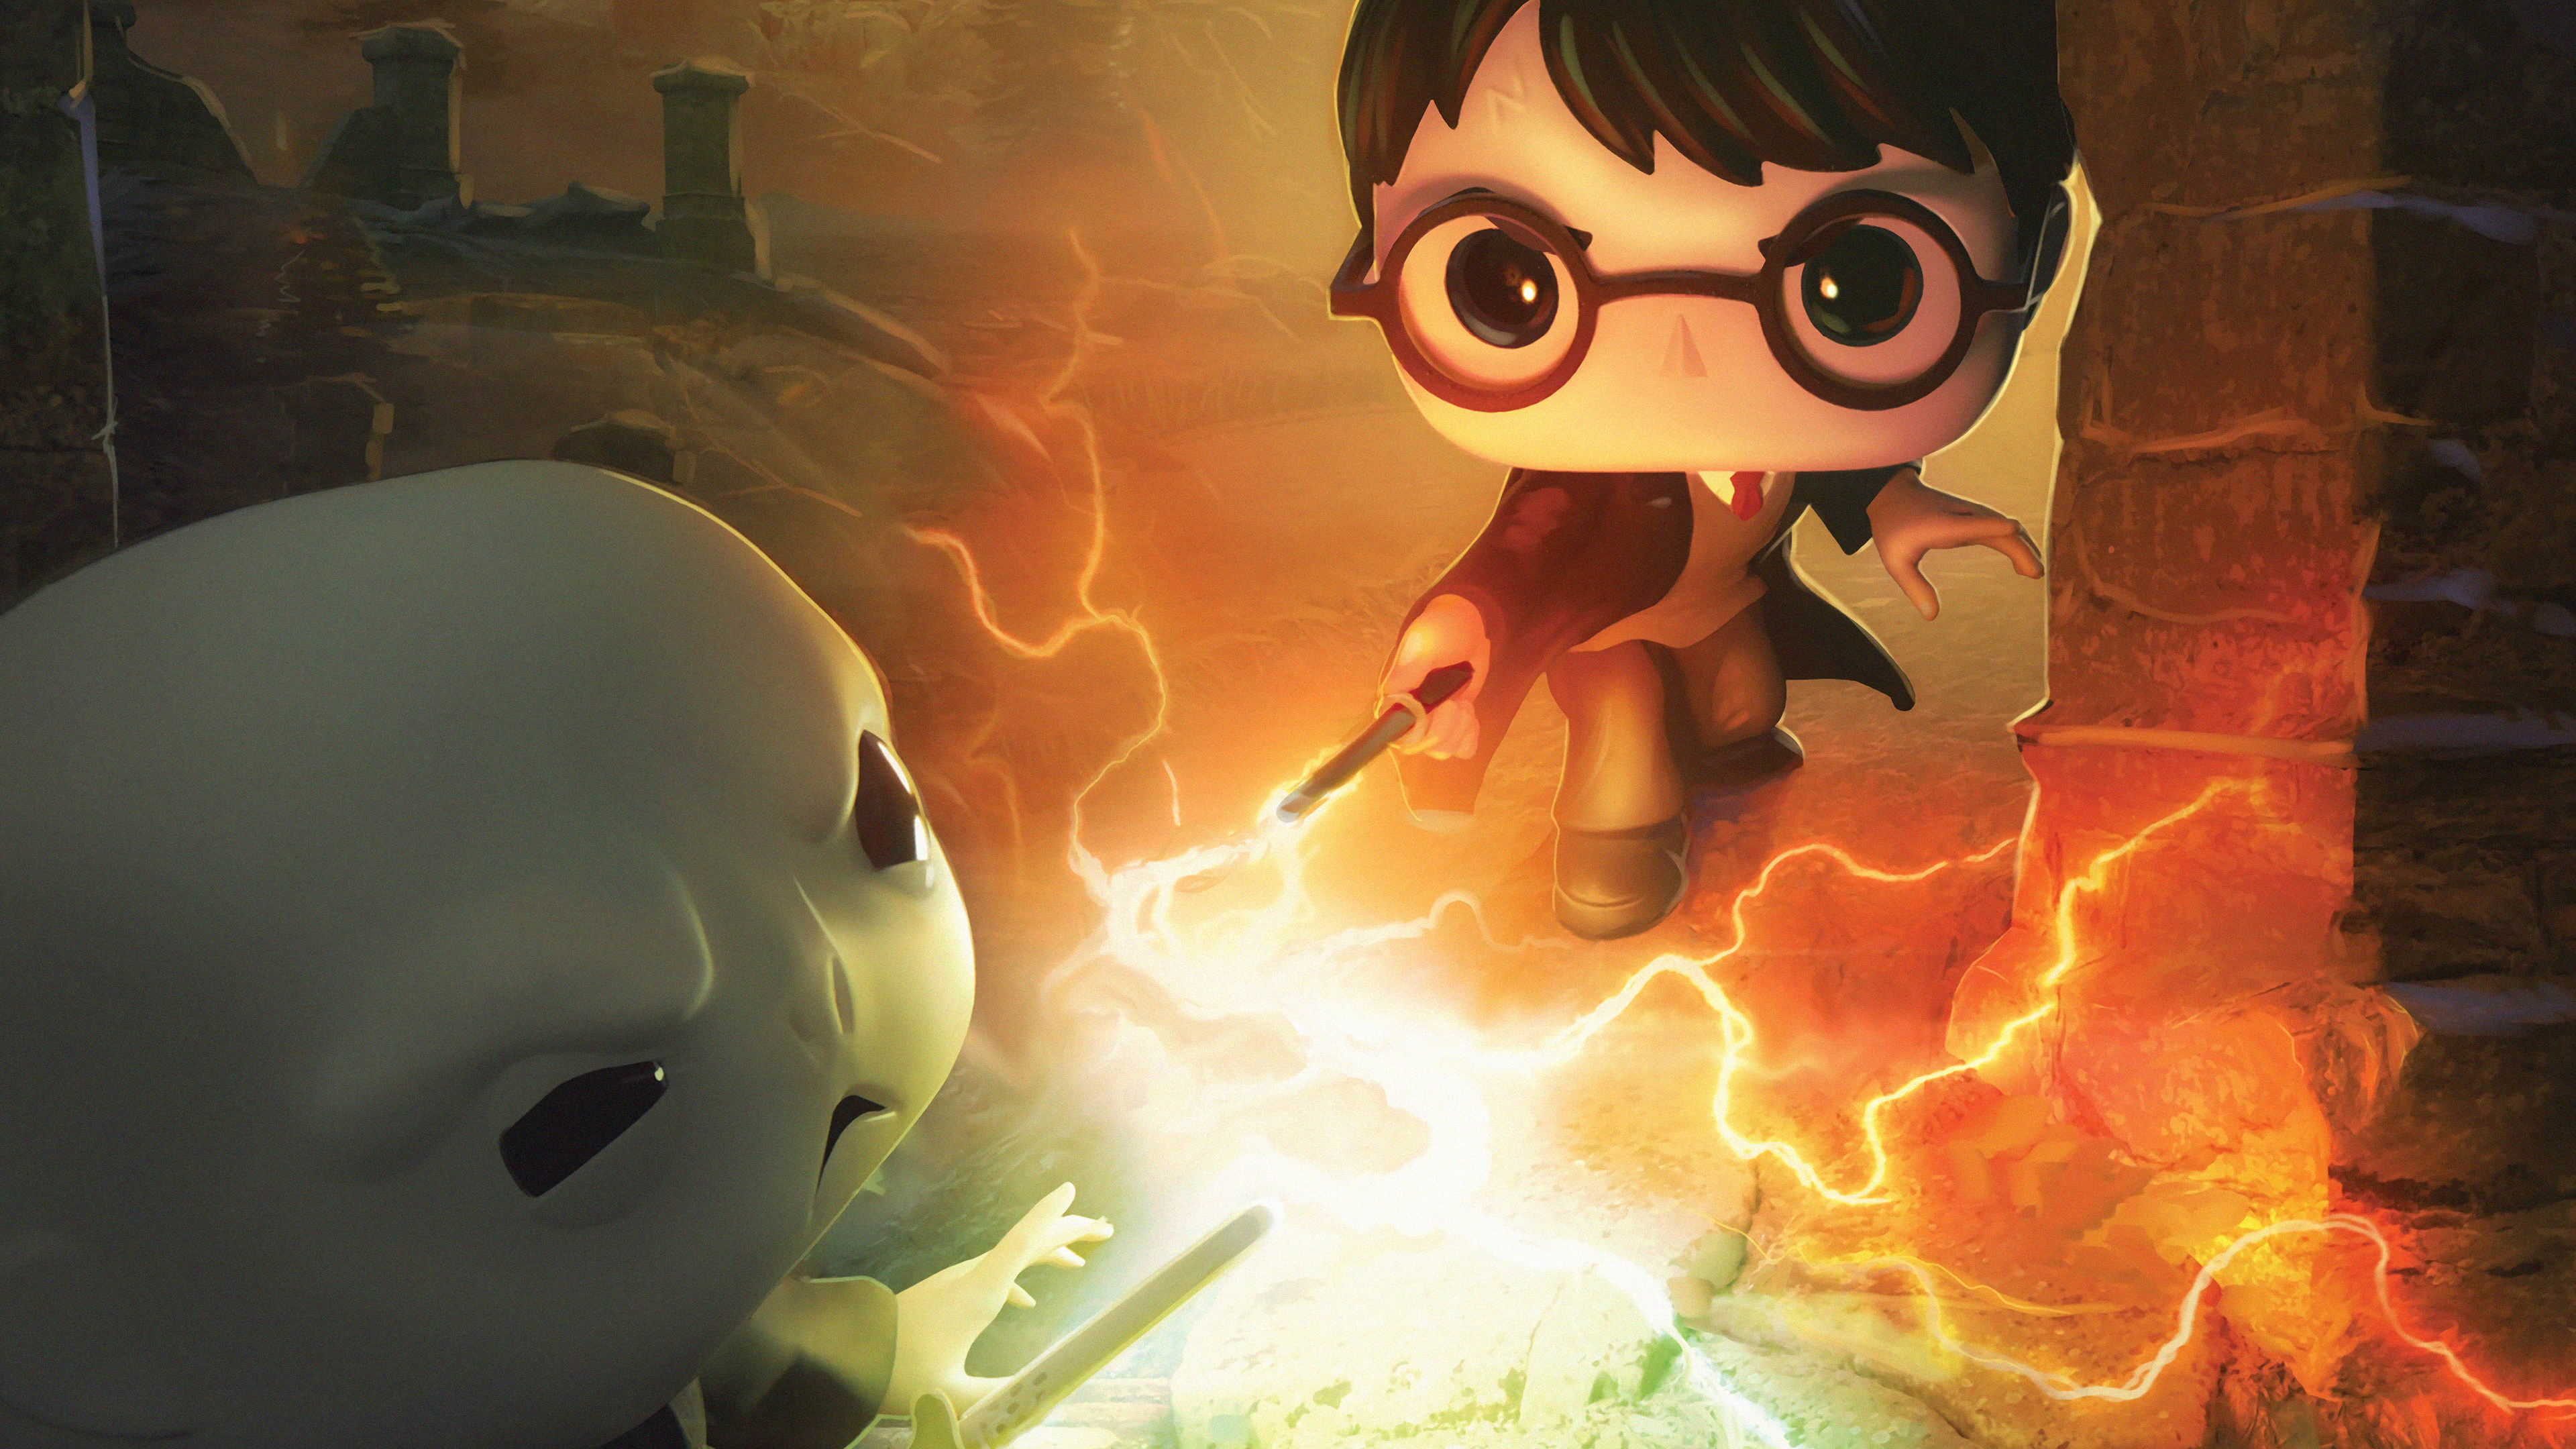 Harry Potter Dc Funkoverse 4k Hd Games 4k Wallpapers Images Backgrounds Photos And Pictures